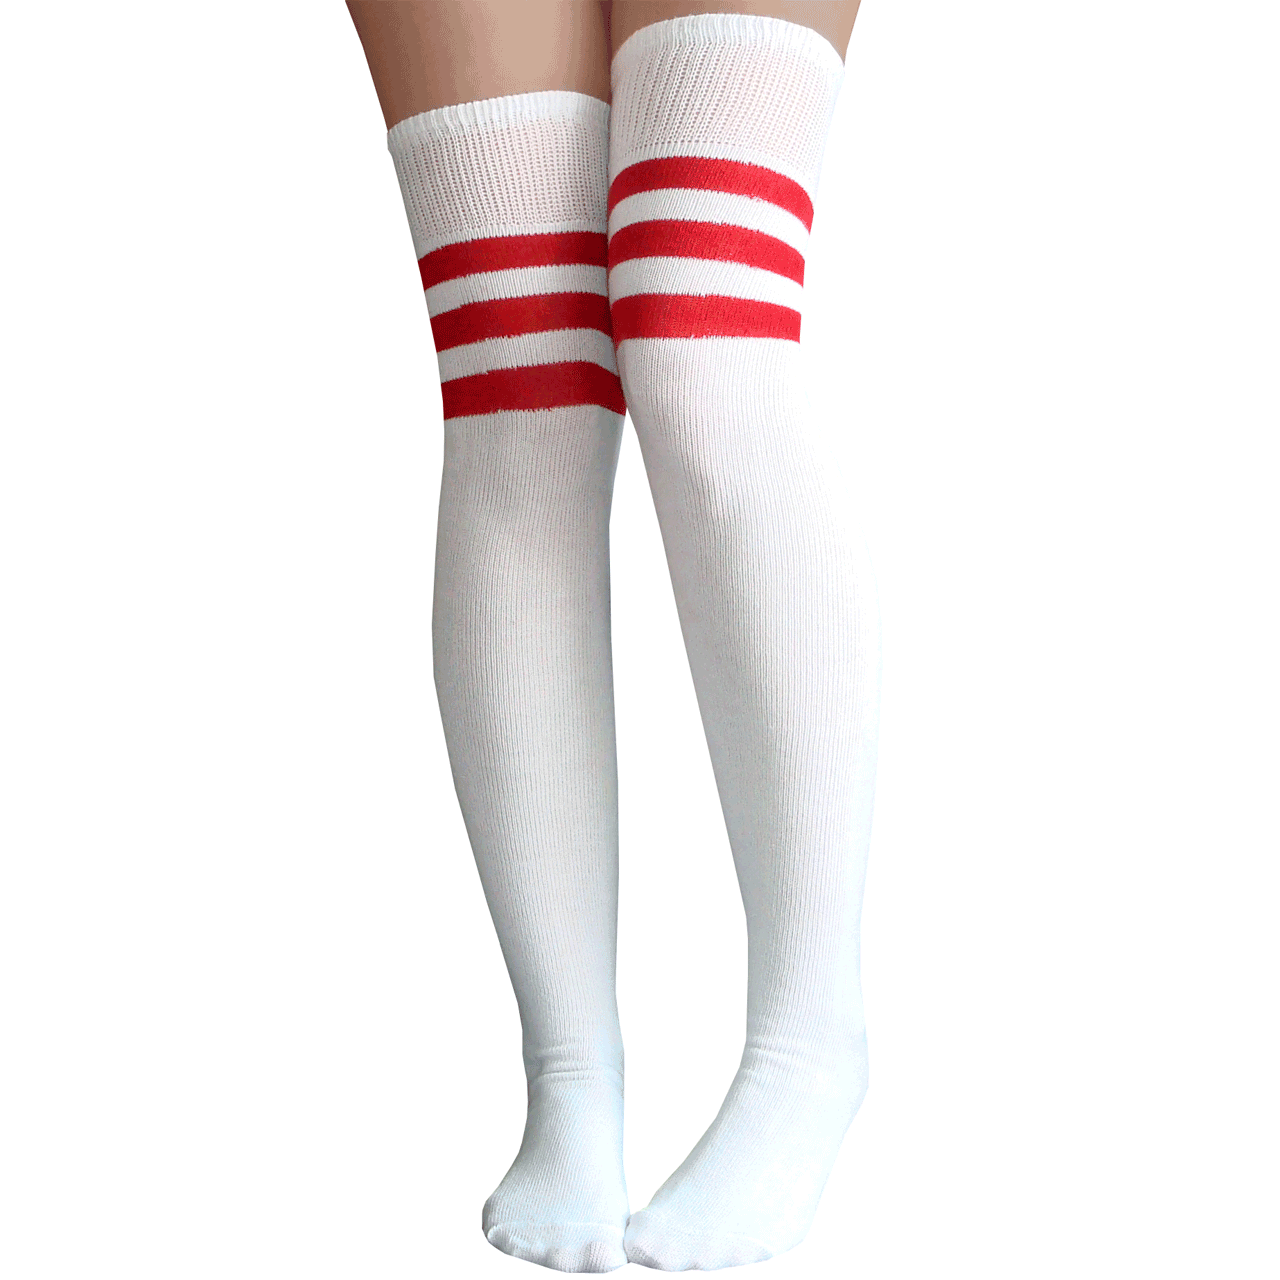 6099d6700a7 White Red Over-the-Knee Socks